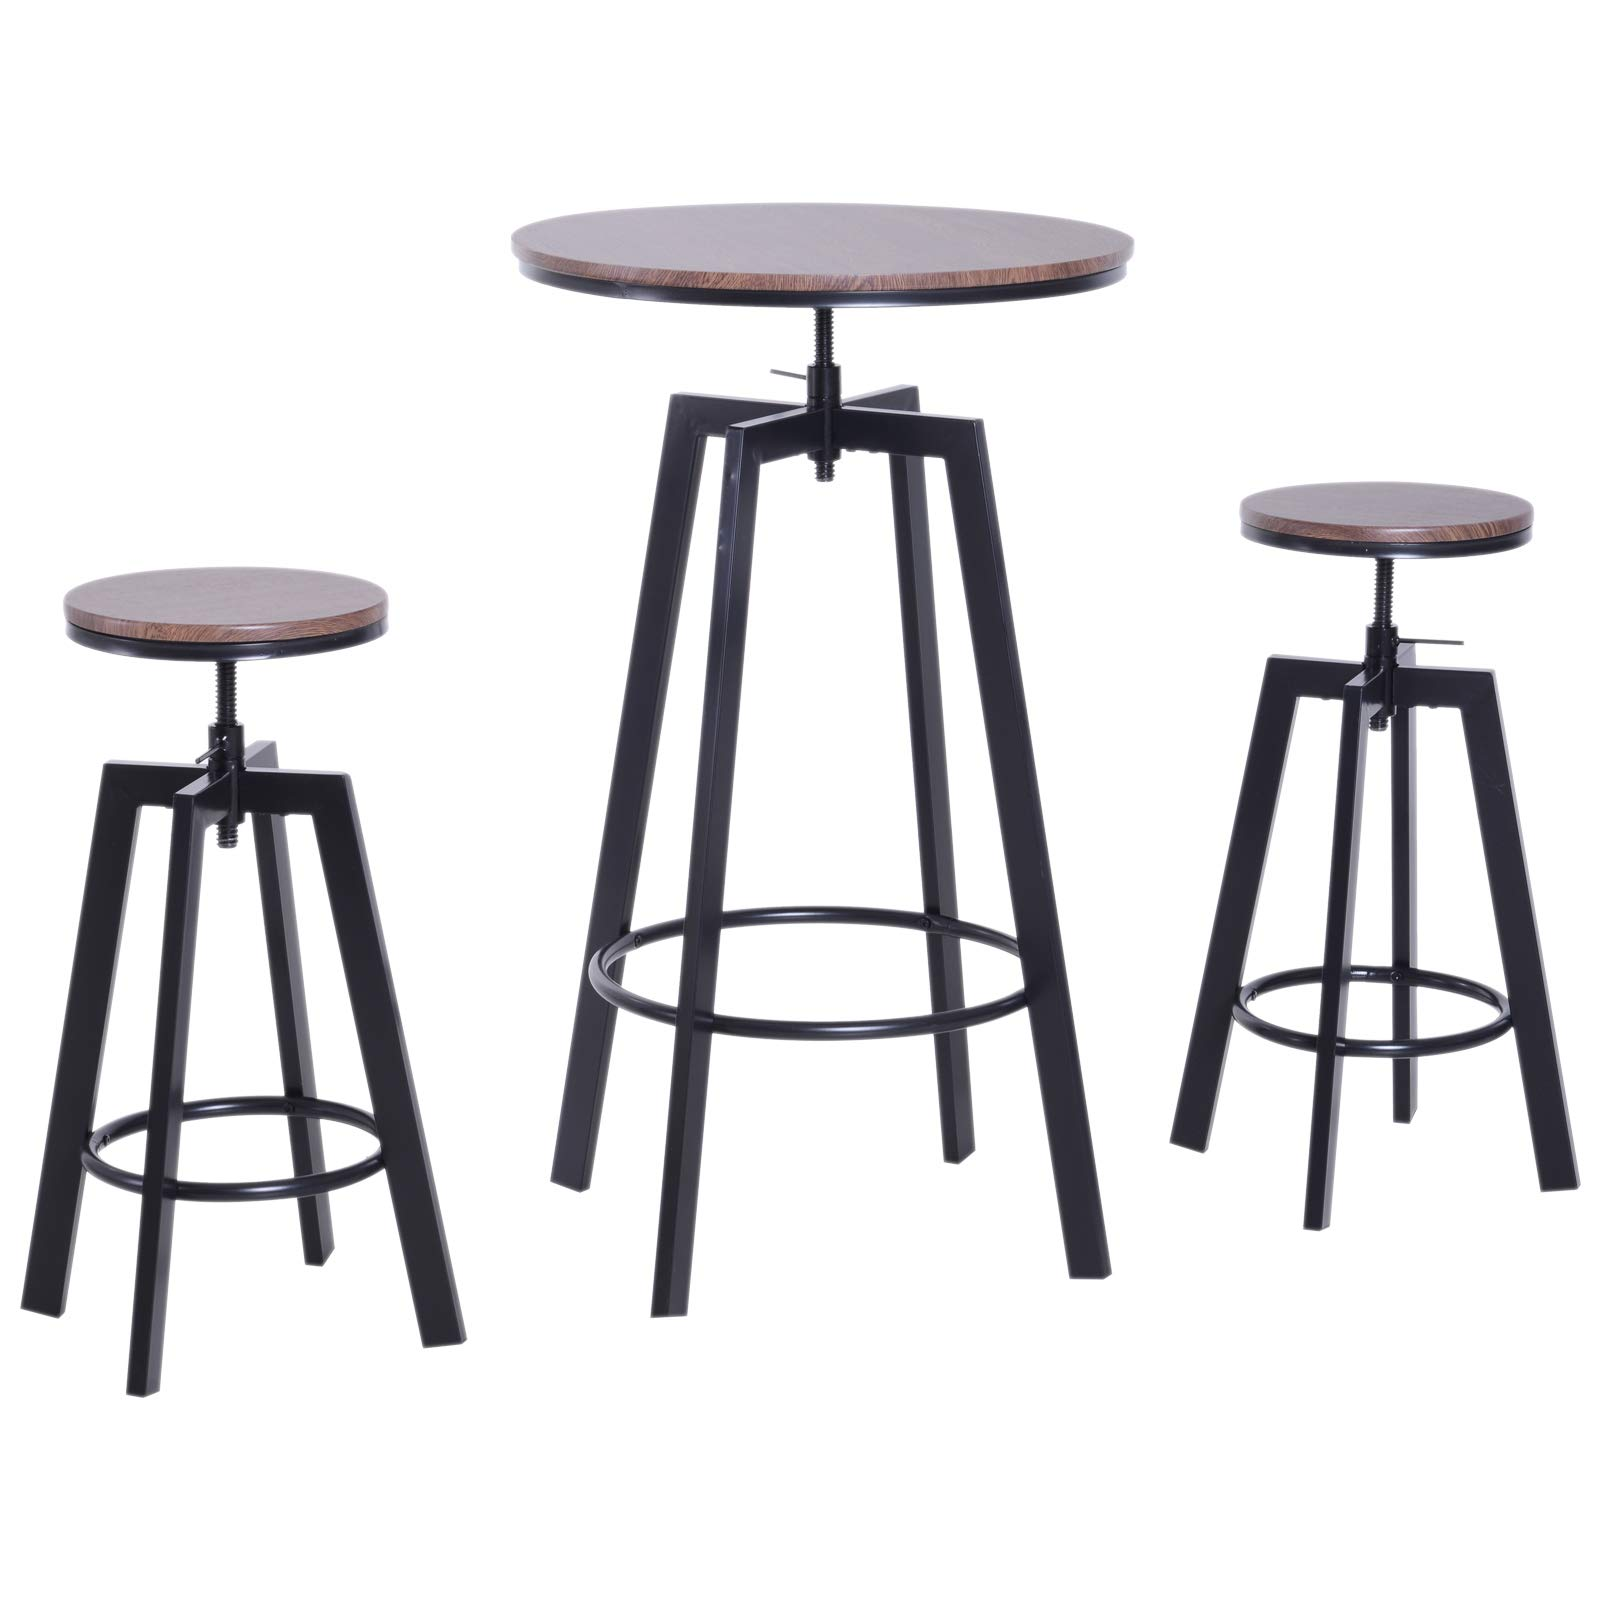 Homcom 3 Pieces Bar Table Set 2 Stools Steel Round Dining Chairs Industrial Adjustable Height Wooden Top Kitchen Pub Buy Online In Cape Verde At Capeverde Desertcart Com Productid 156195309